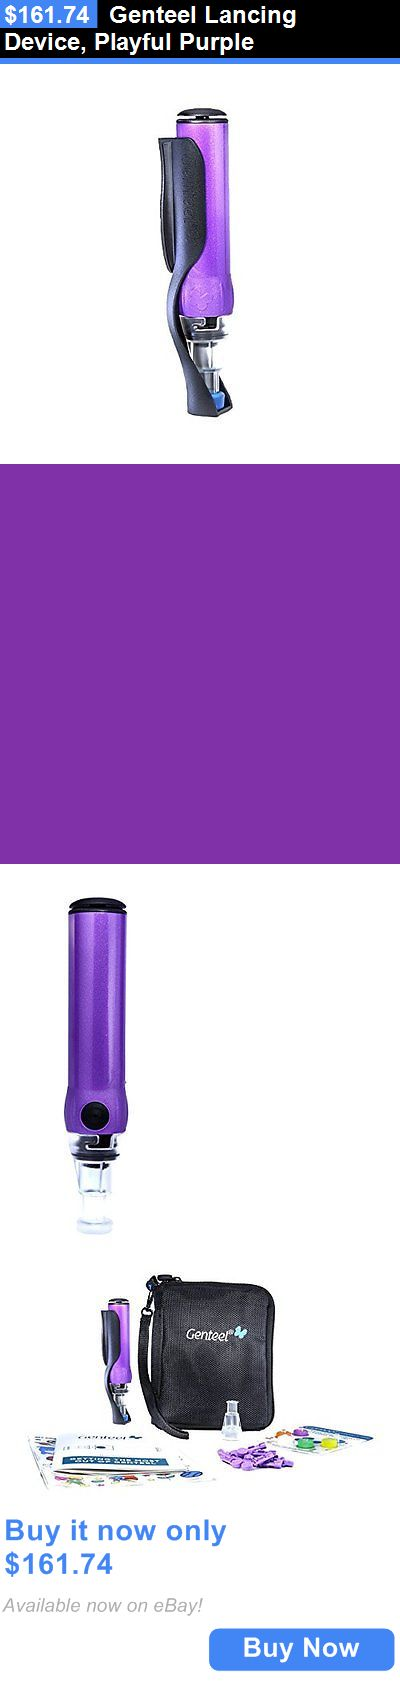 Lancets: Genteel Lancing Device, Playful Purple BUY IT NOW ONLY: $161.74